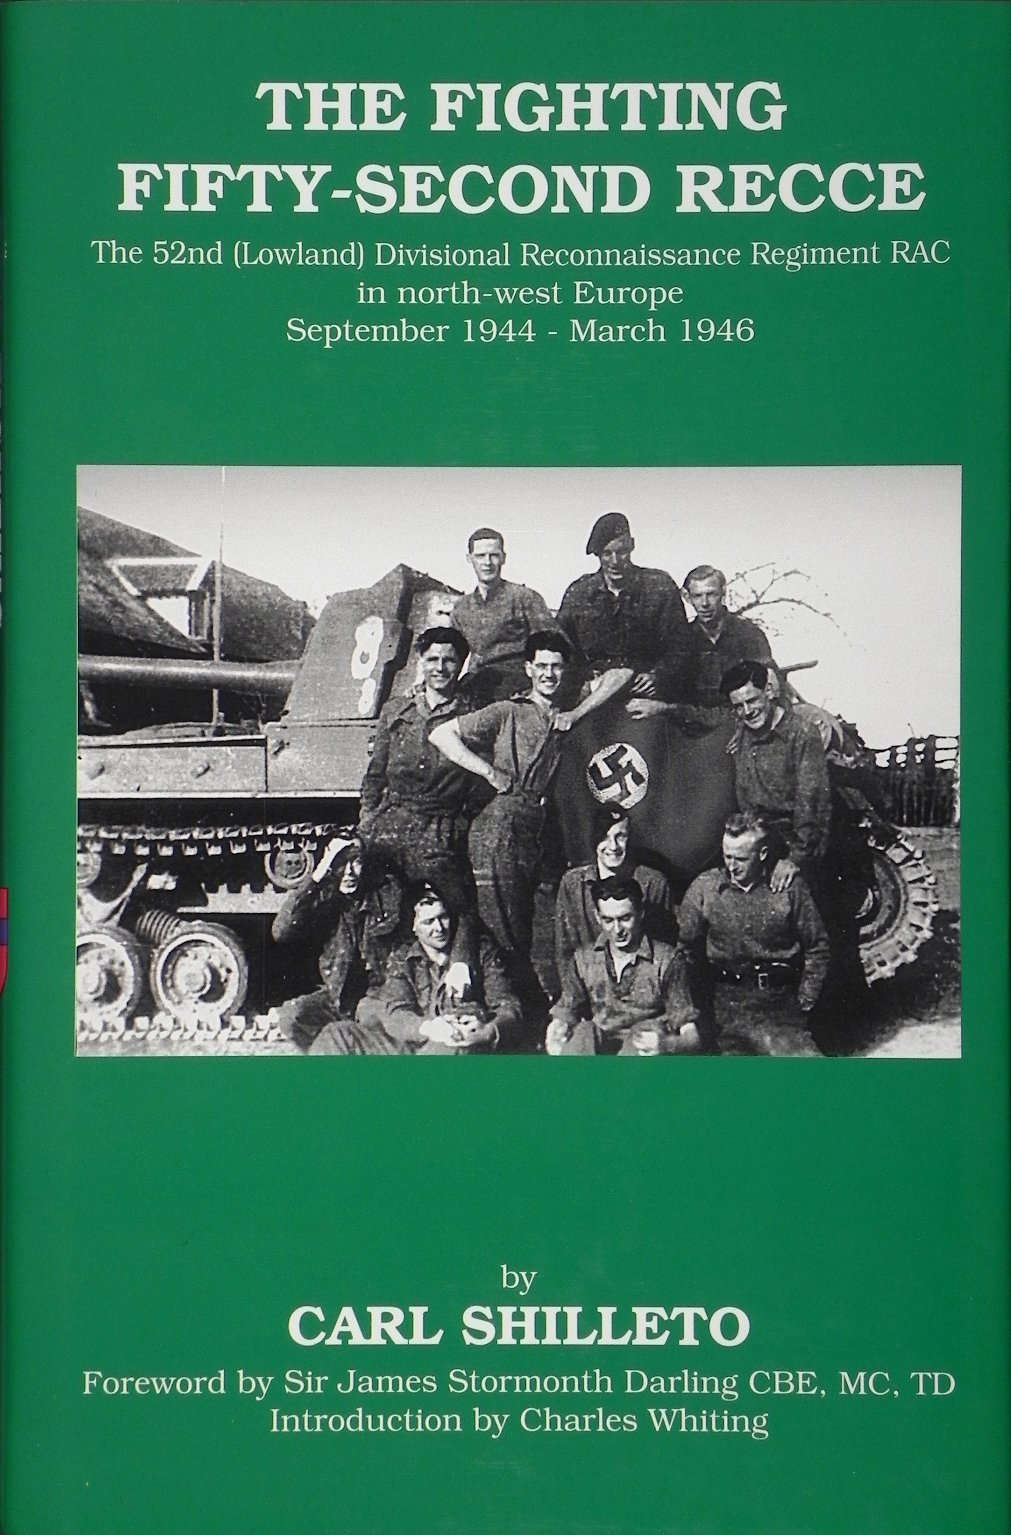 Download The Fighting Fifty-second Recce: The 52nd (lowland) Divisional Reconnaissance September 1944 to March 1946 PDF